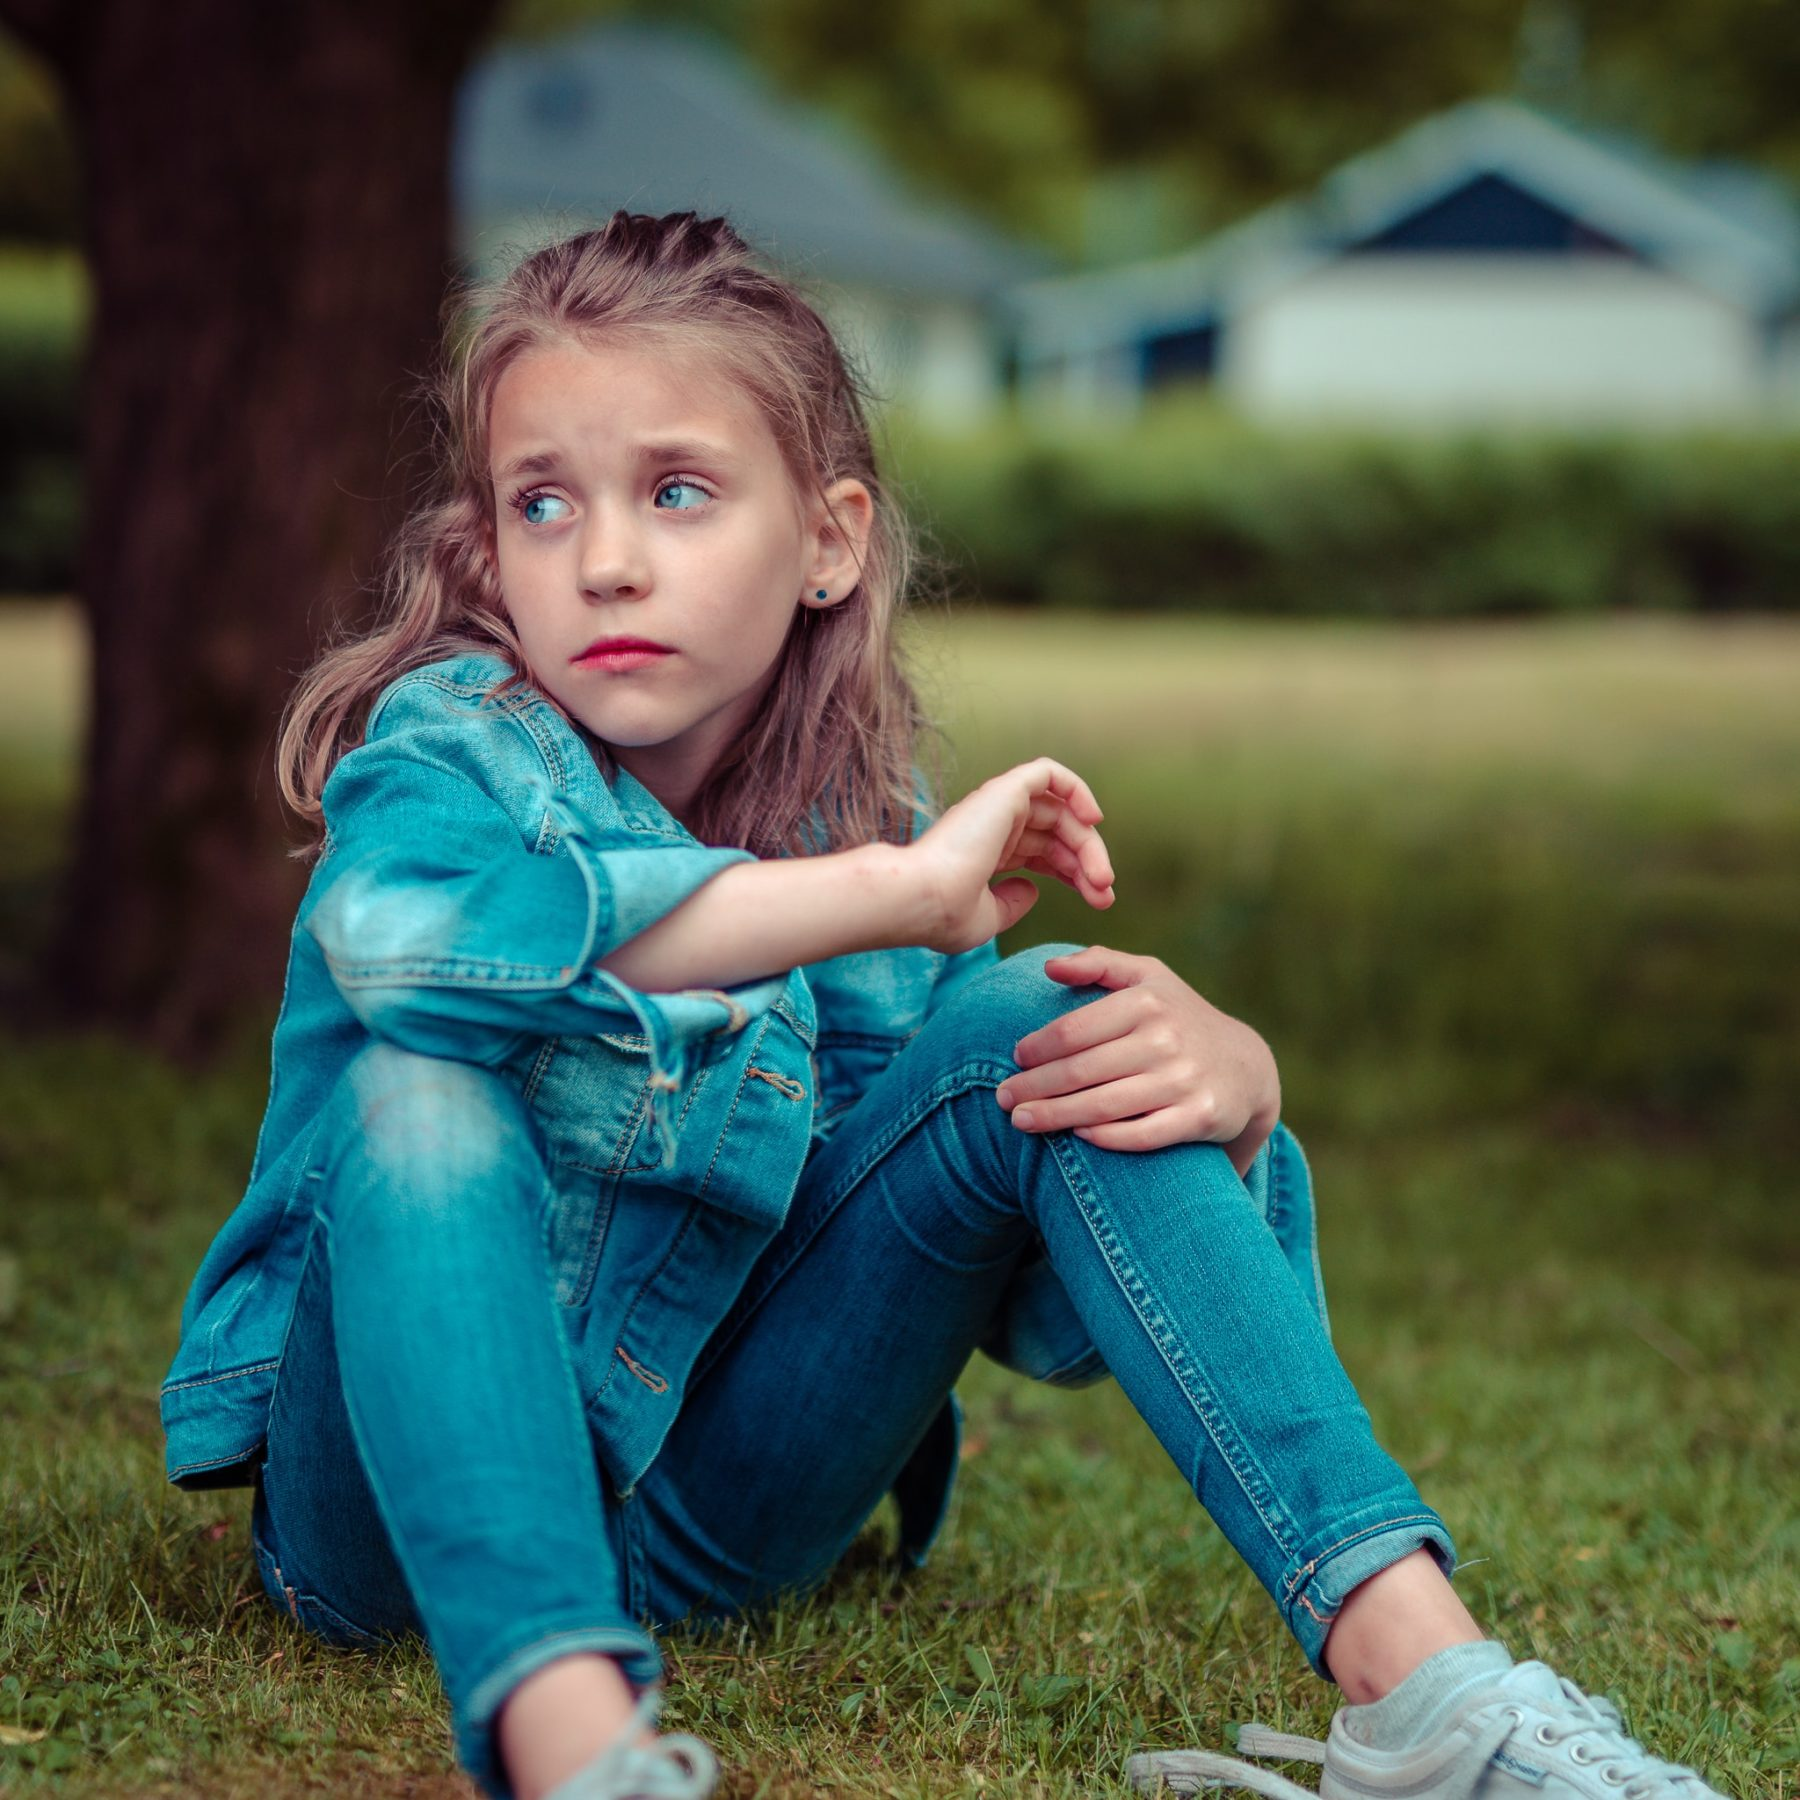 Scared, sad child sitting on grass in blue jeans and jean jacket